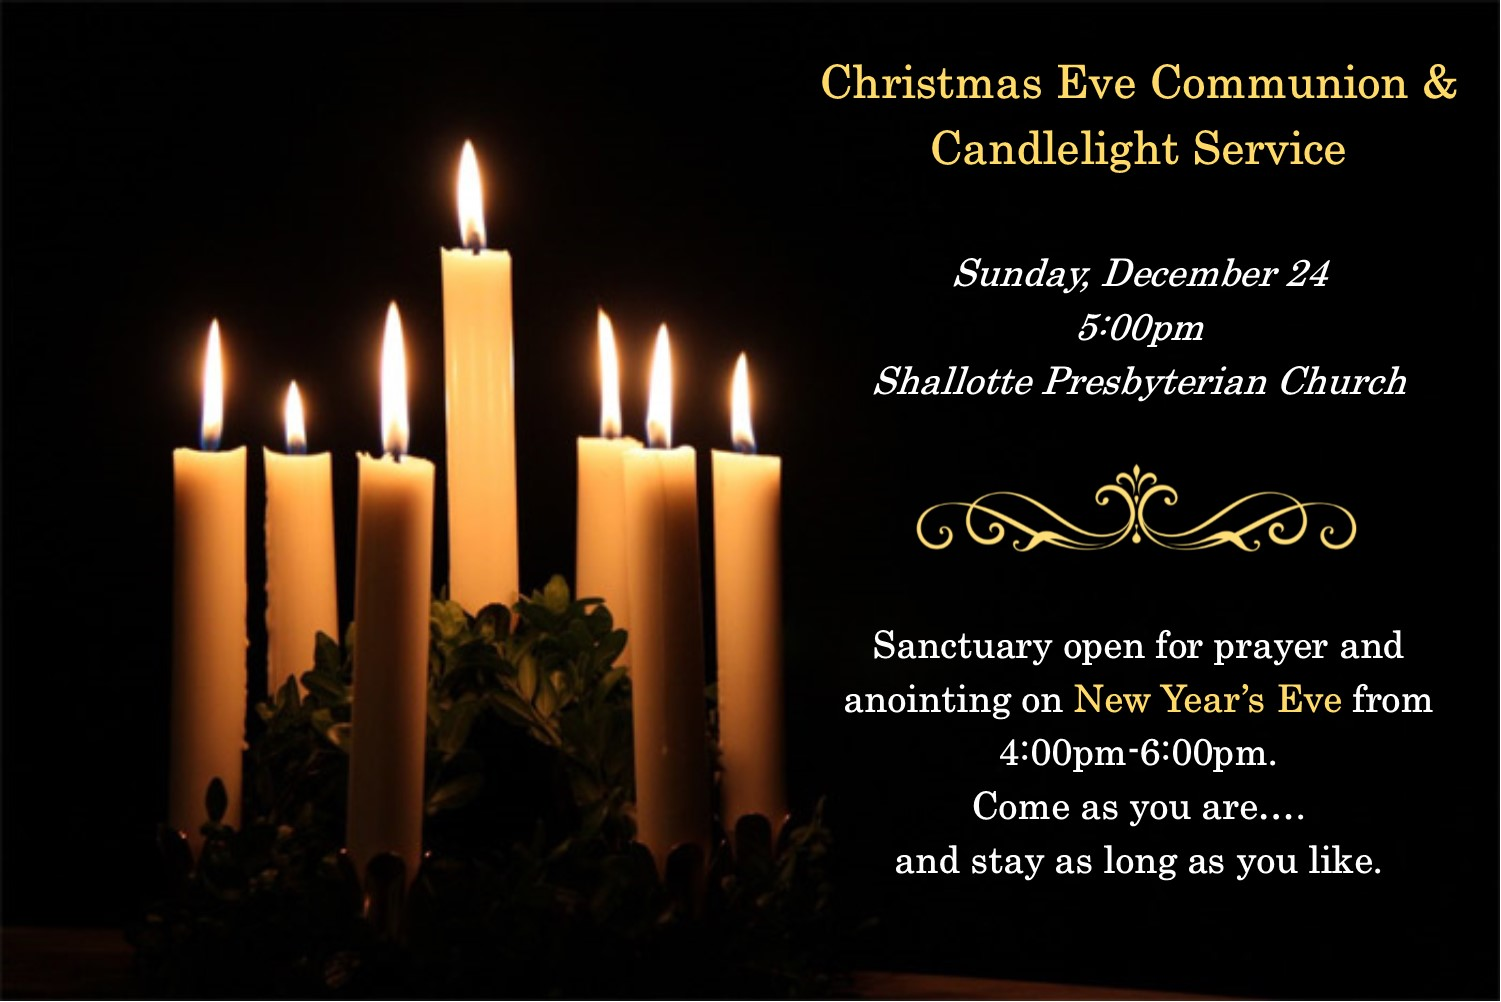 christmas eve communion candlelight service sunday december 24 500pm sanctuary open for prayer and anointing on new years eve from 400pm 600pm